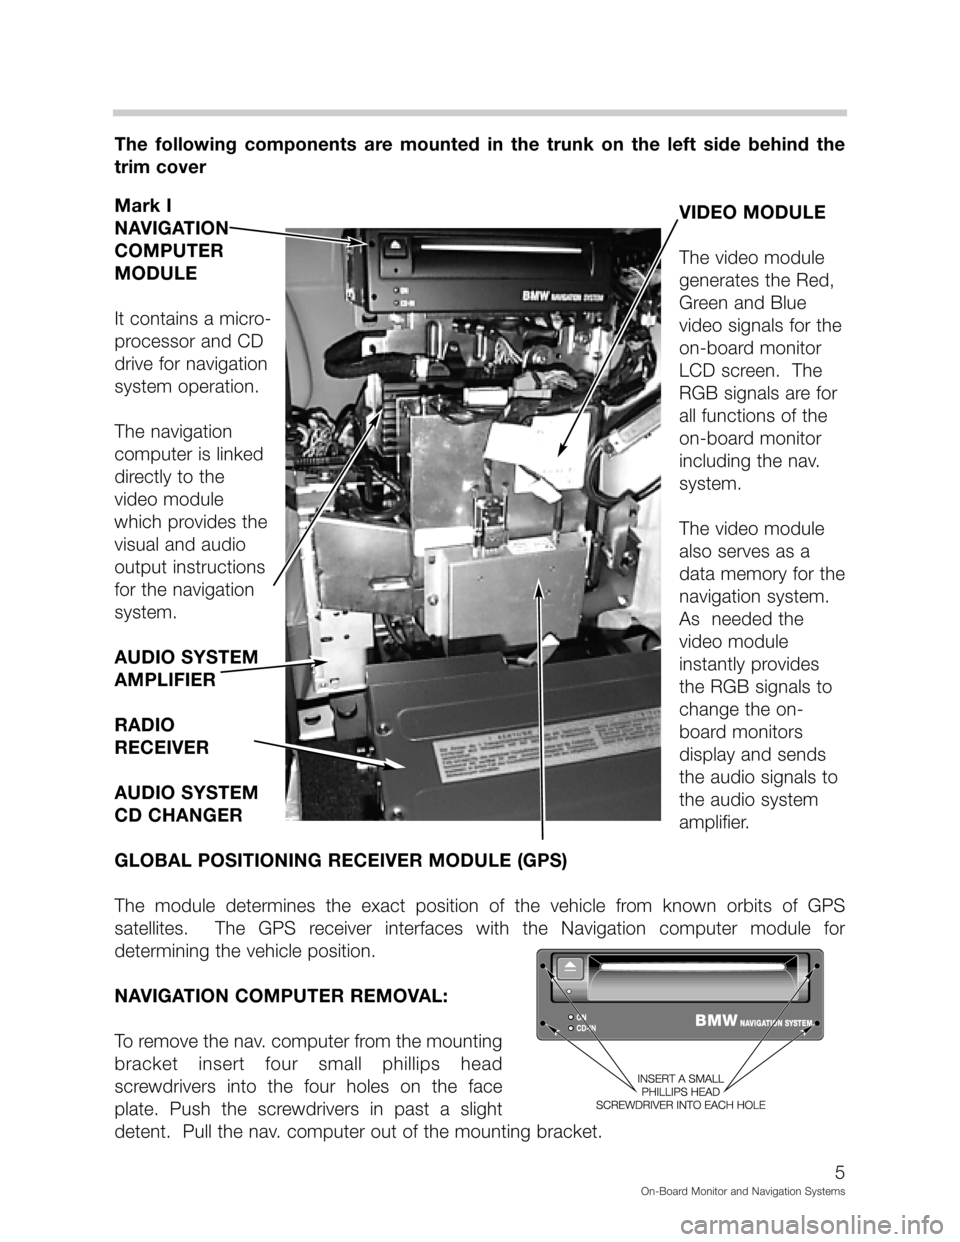 BMW 5 SERIES 1998 E39 On Board Monitor System Workshop Manual, Page 5